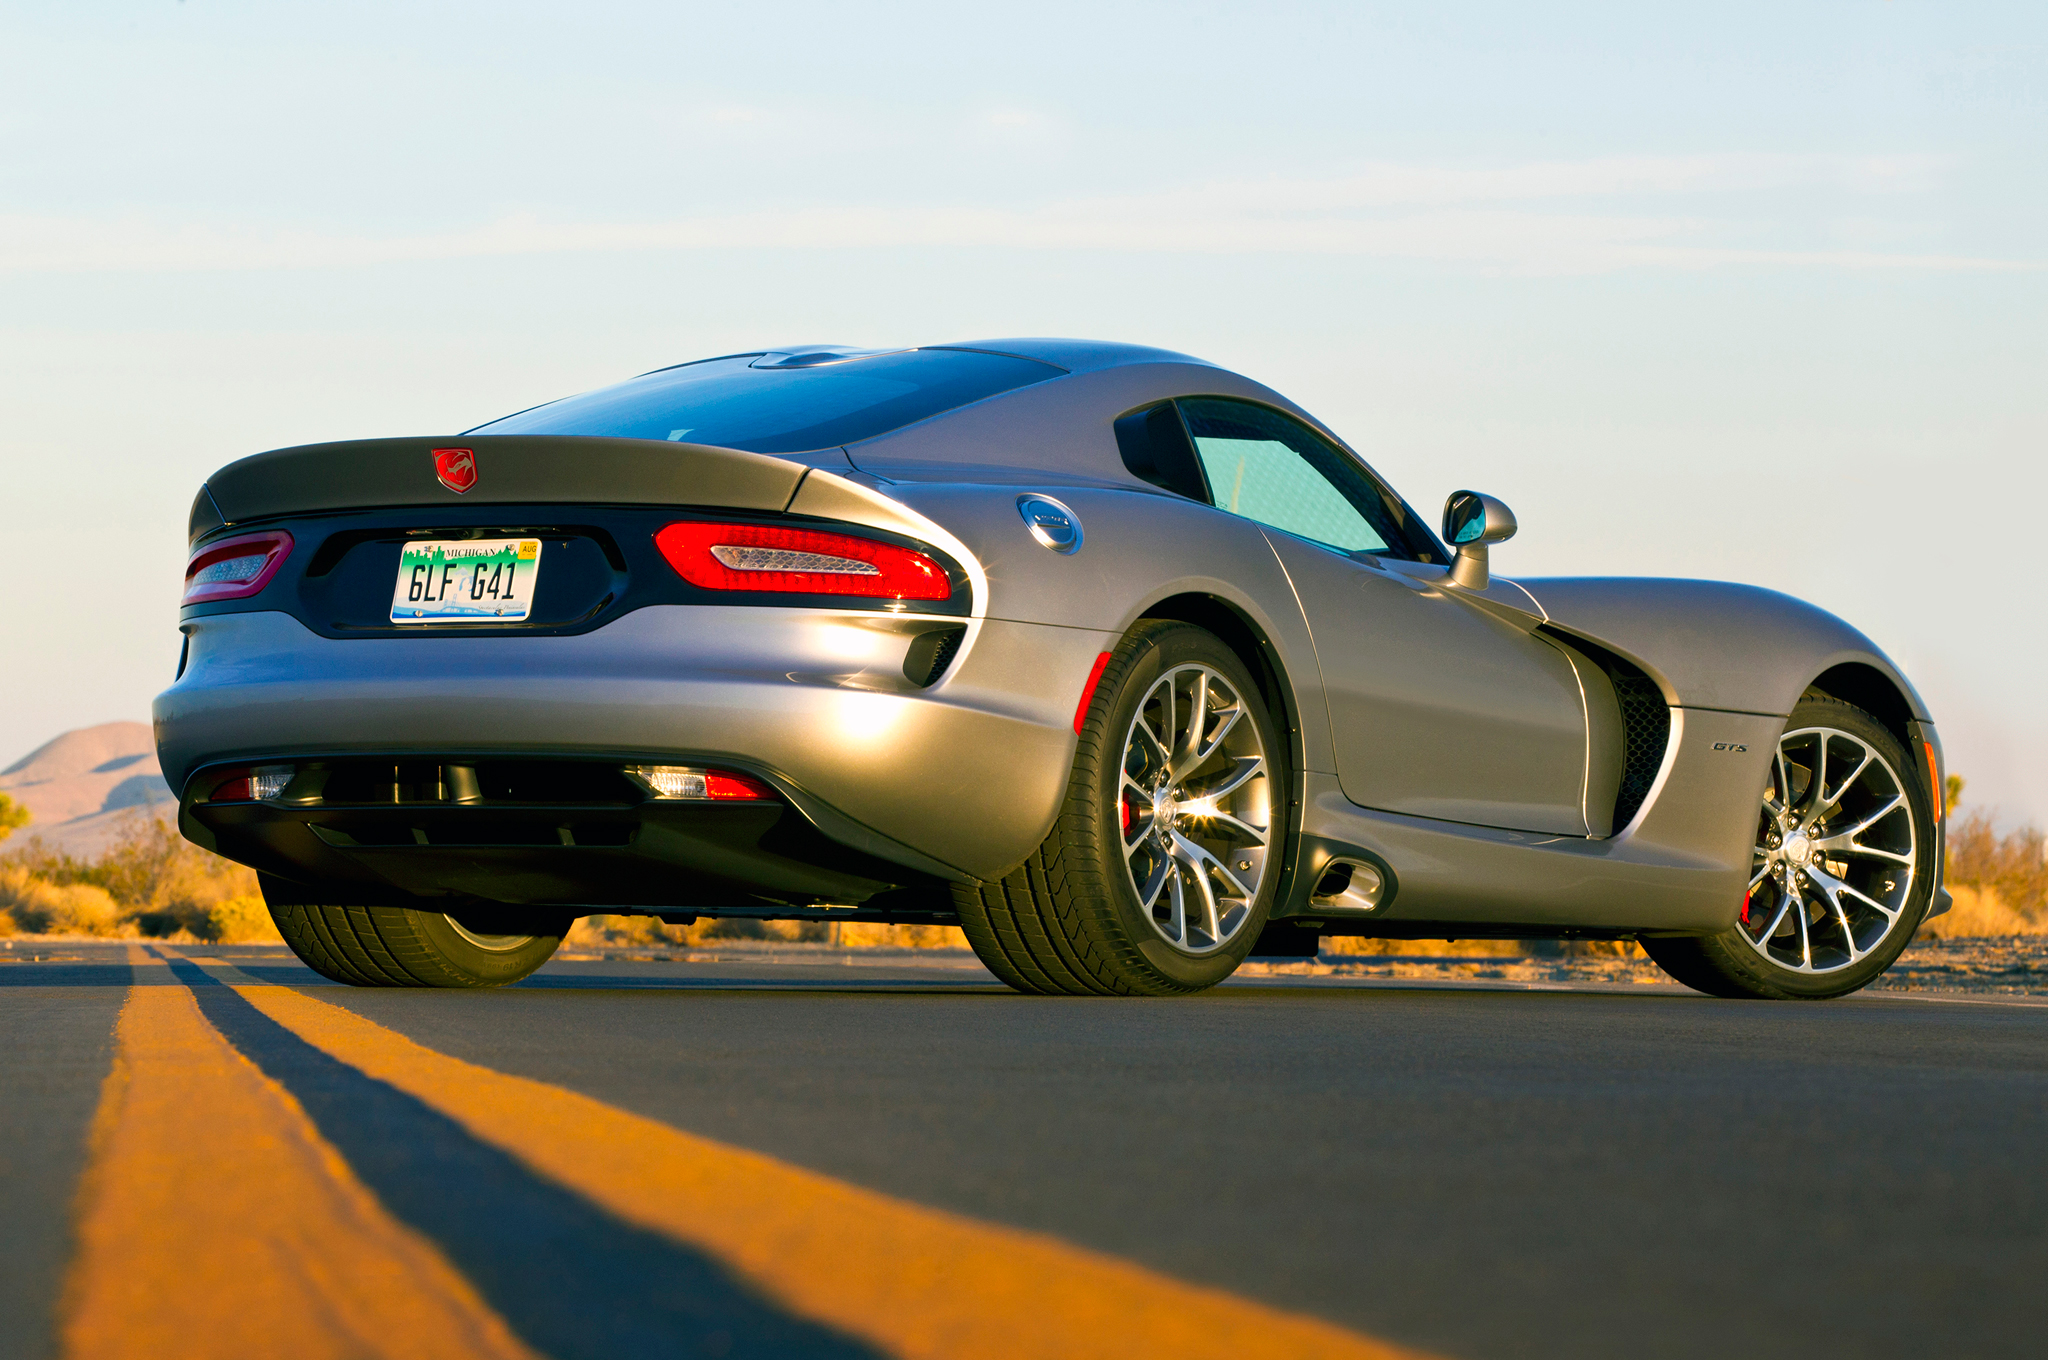 2015 Dodge Viper Srt Price Dropped 15 000 To Boost Sales Motortrend